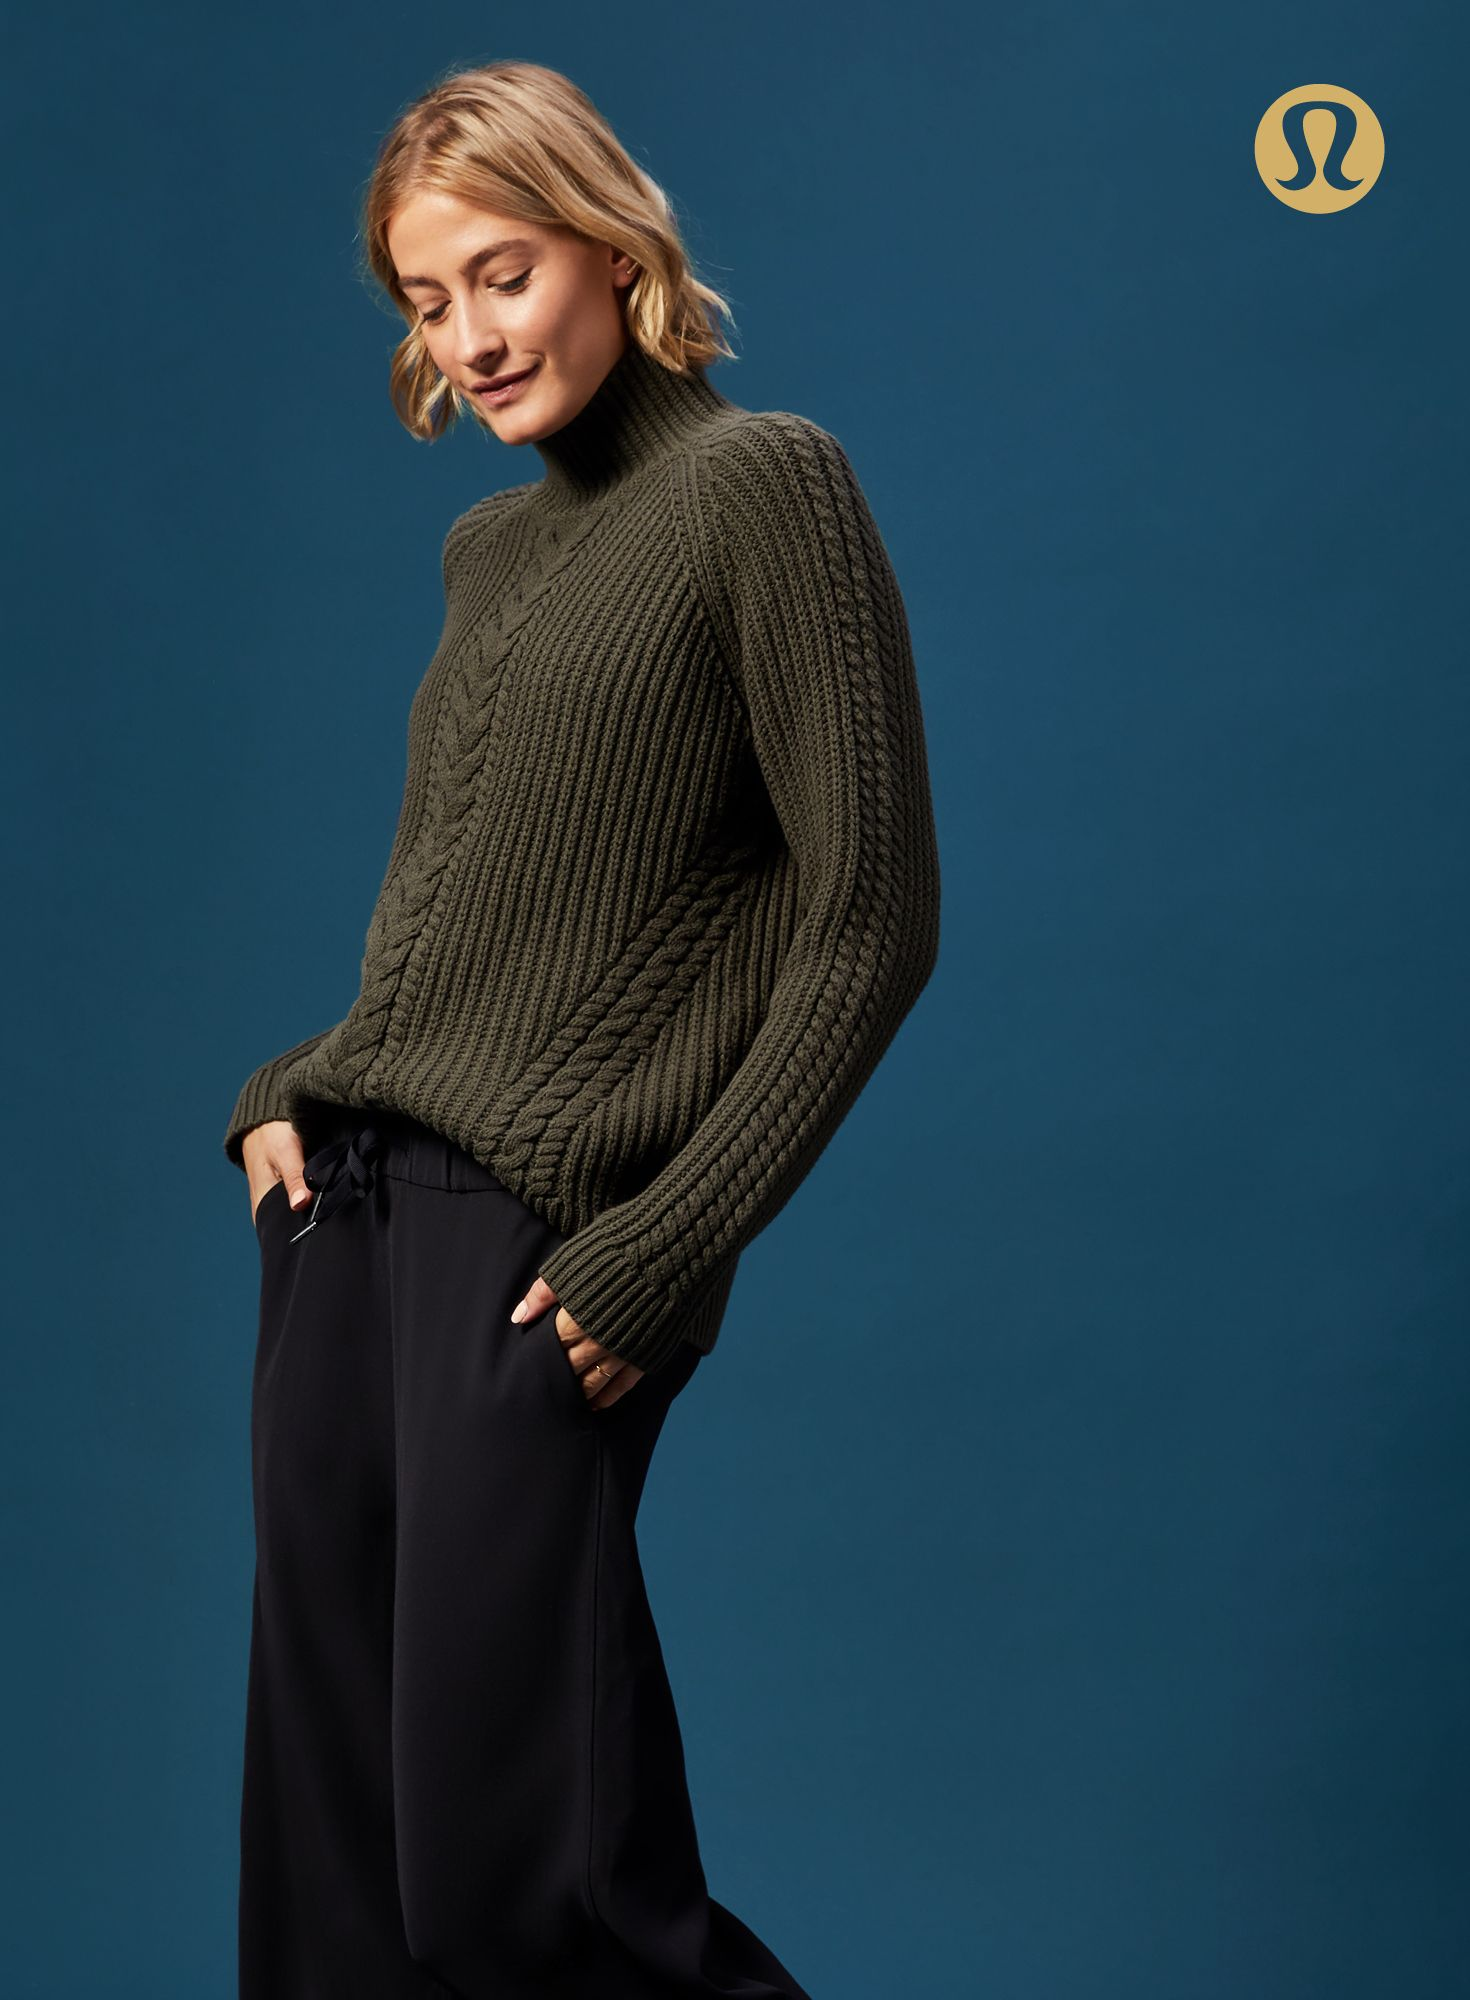 You're going to want to find the Bring The Cozy Turtleneck